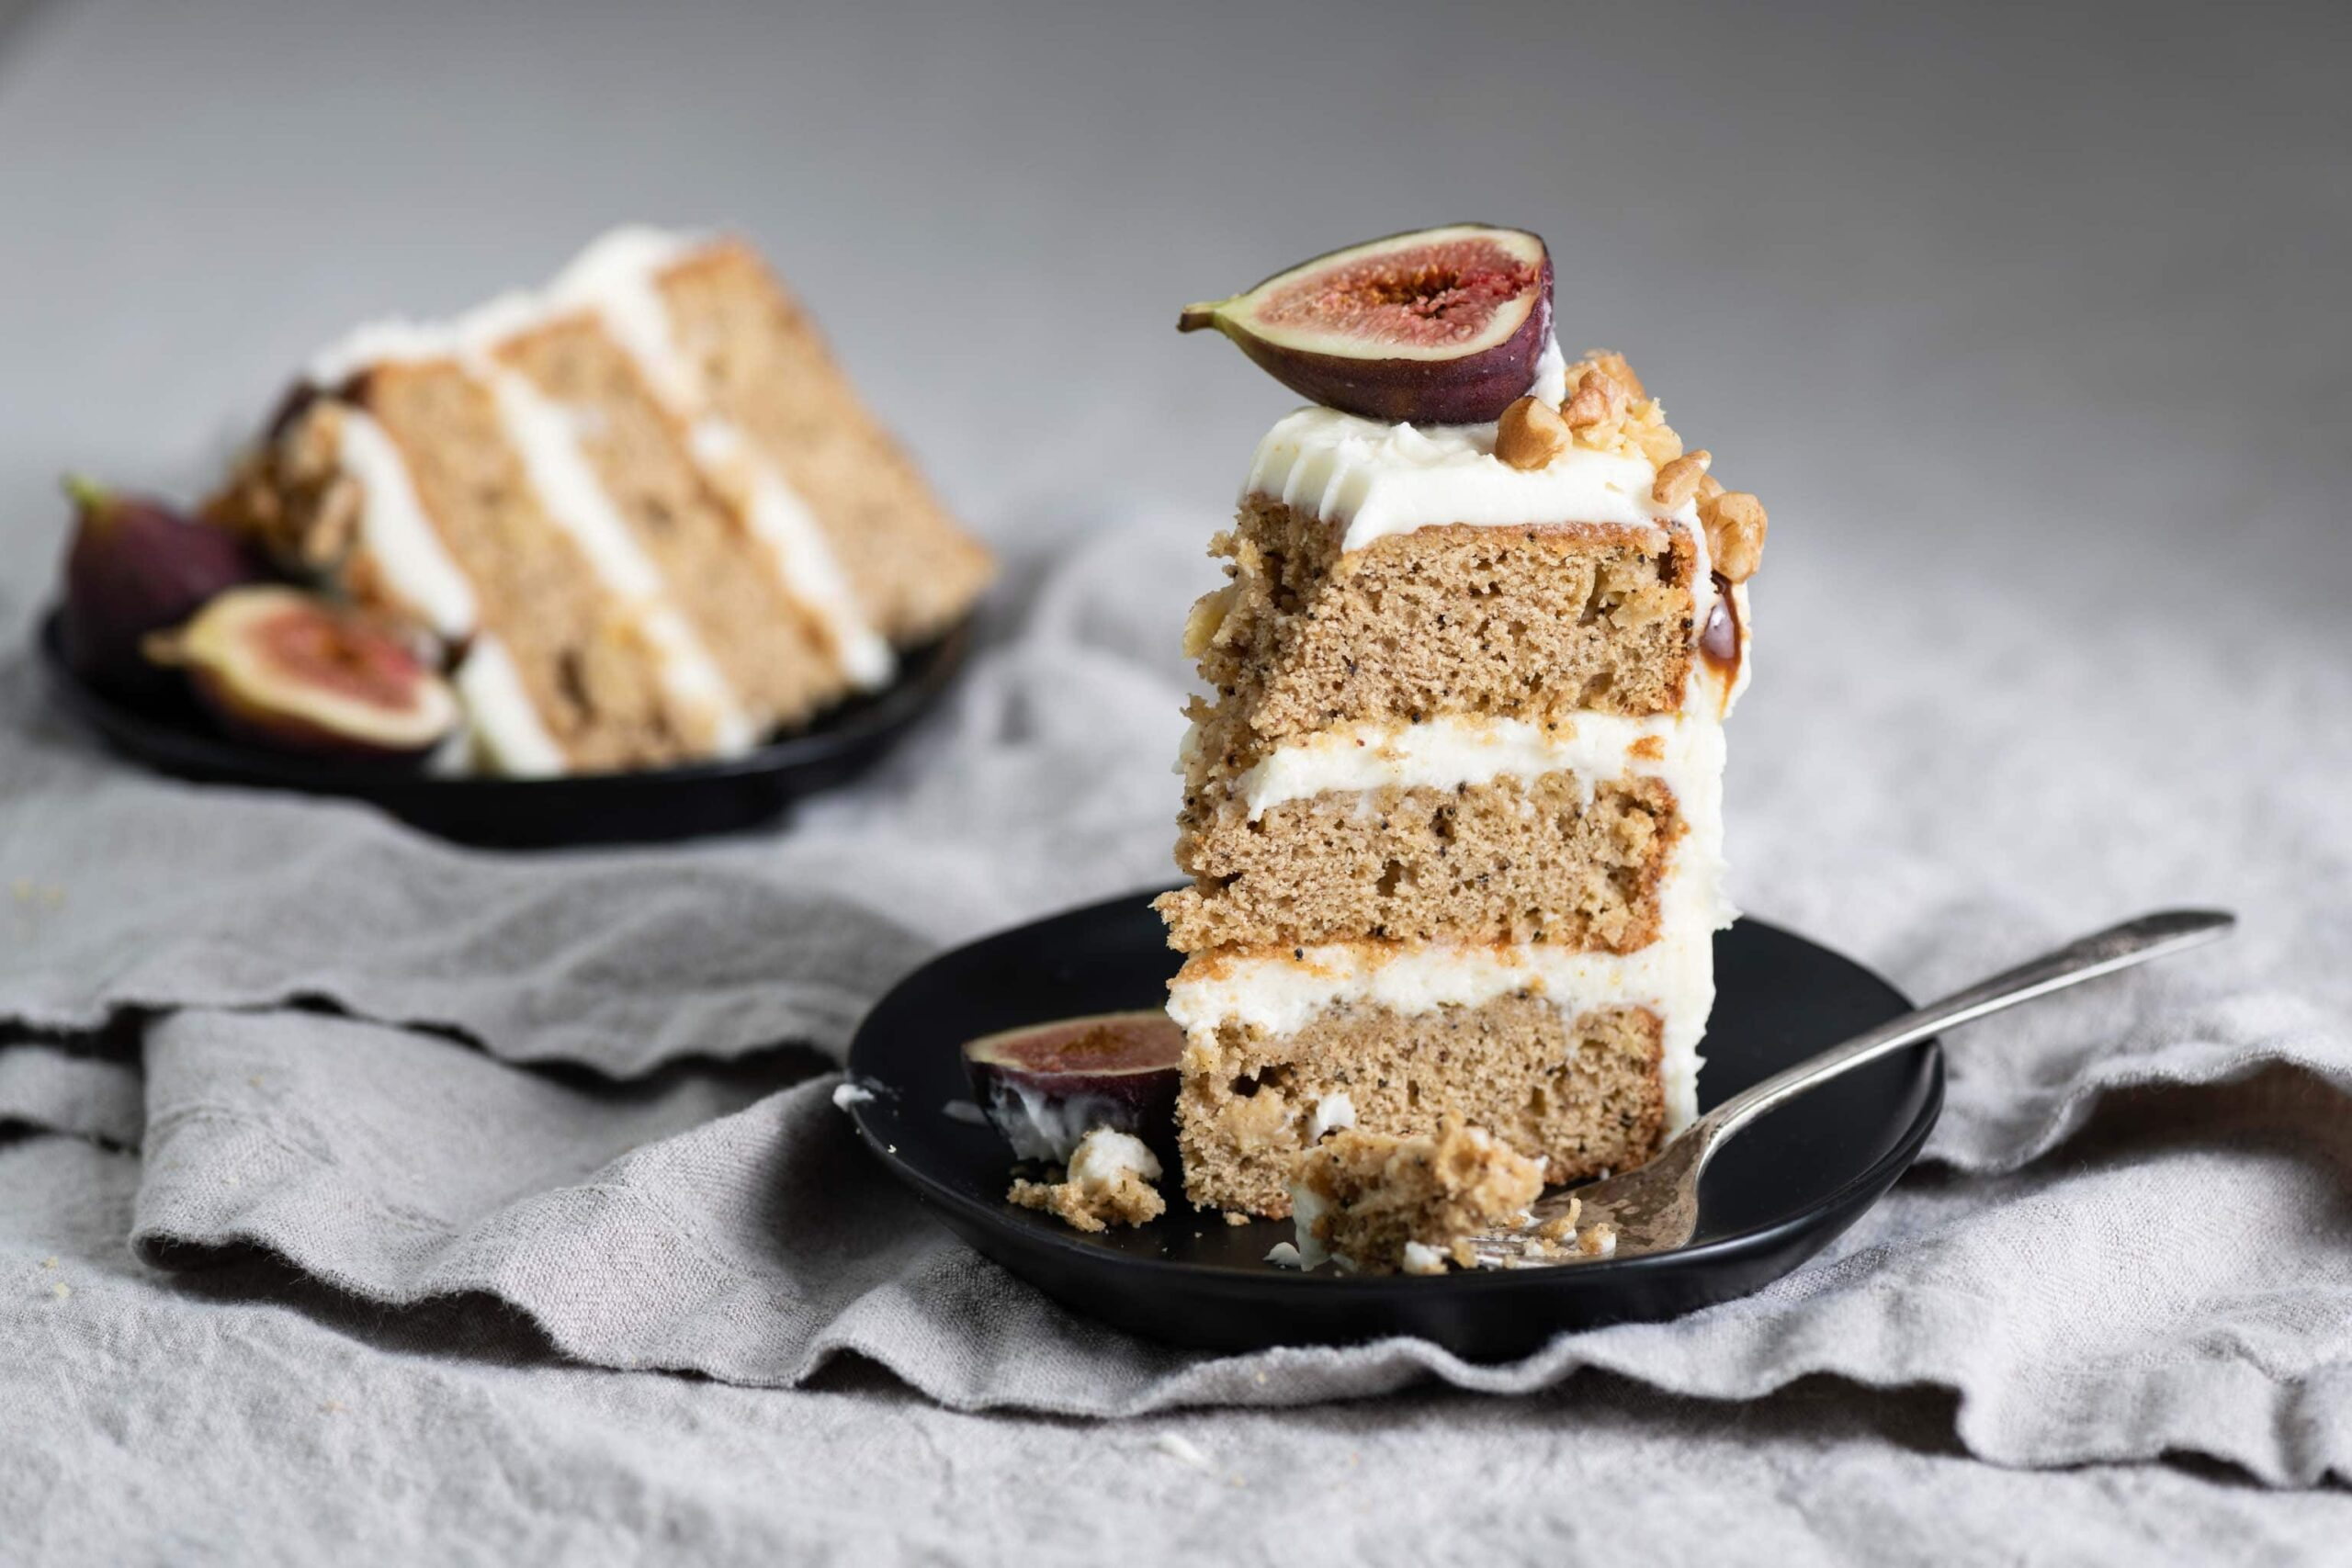 Layered Apple Spice Cake with cream cheese frosting